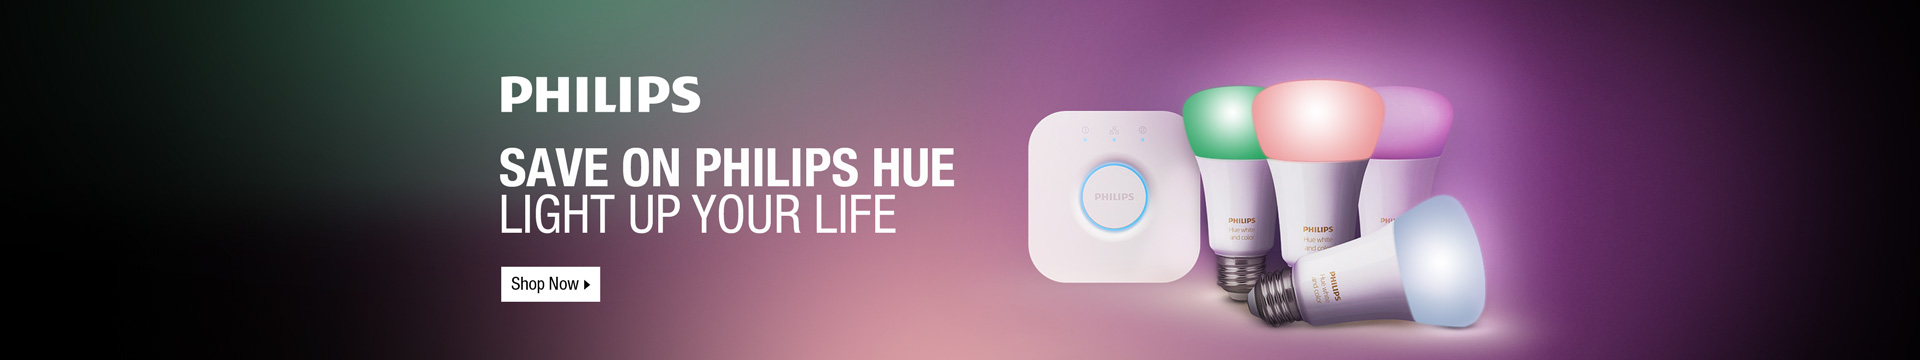 PHILIPS Save on Philips Hue